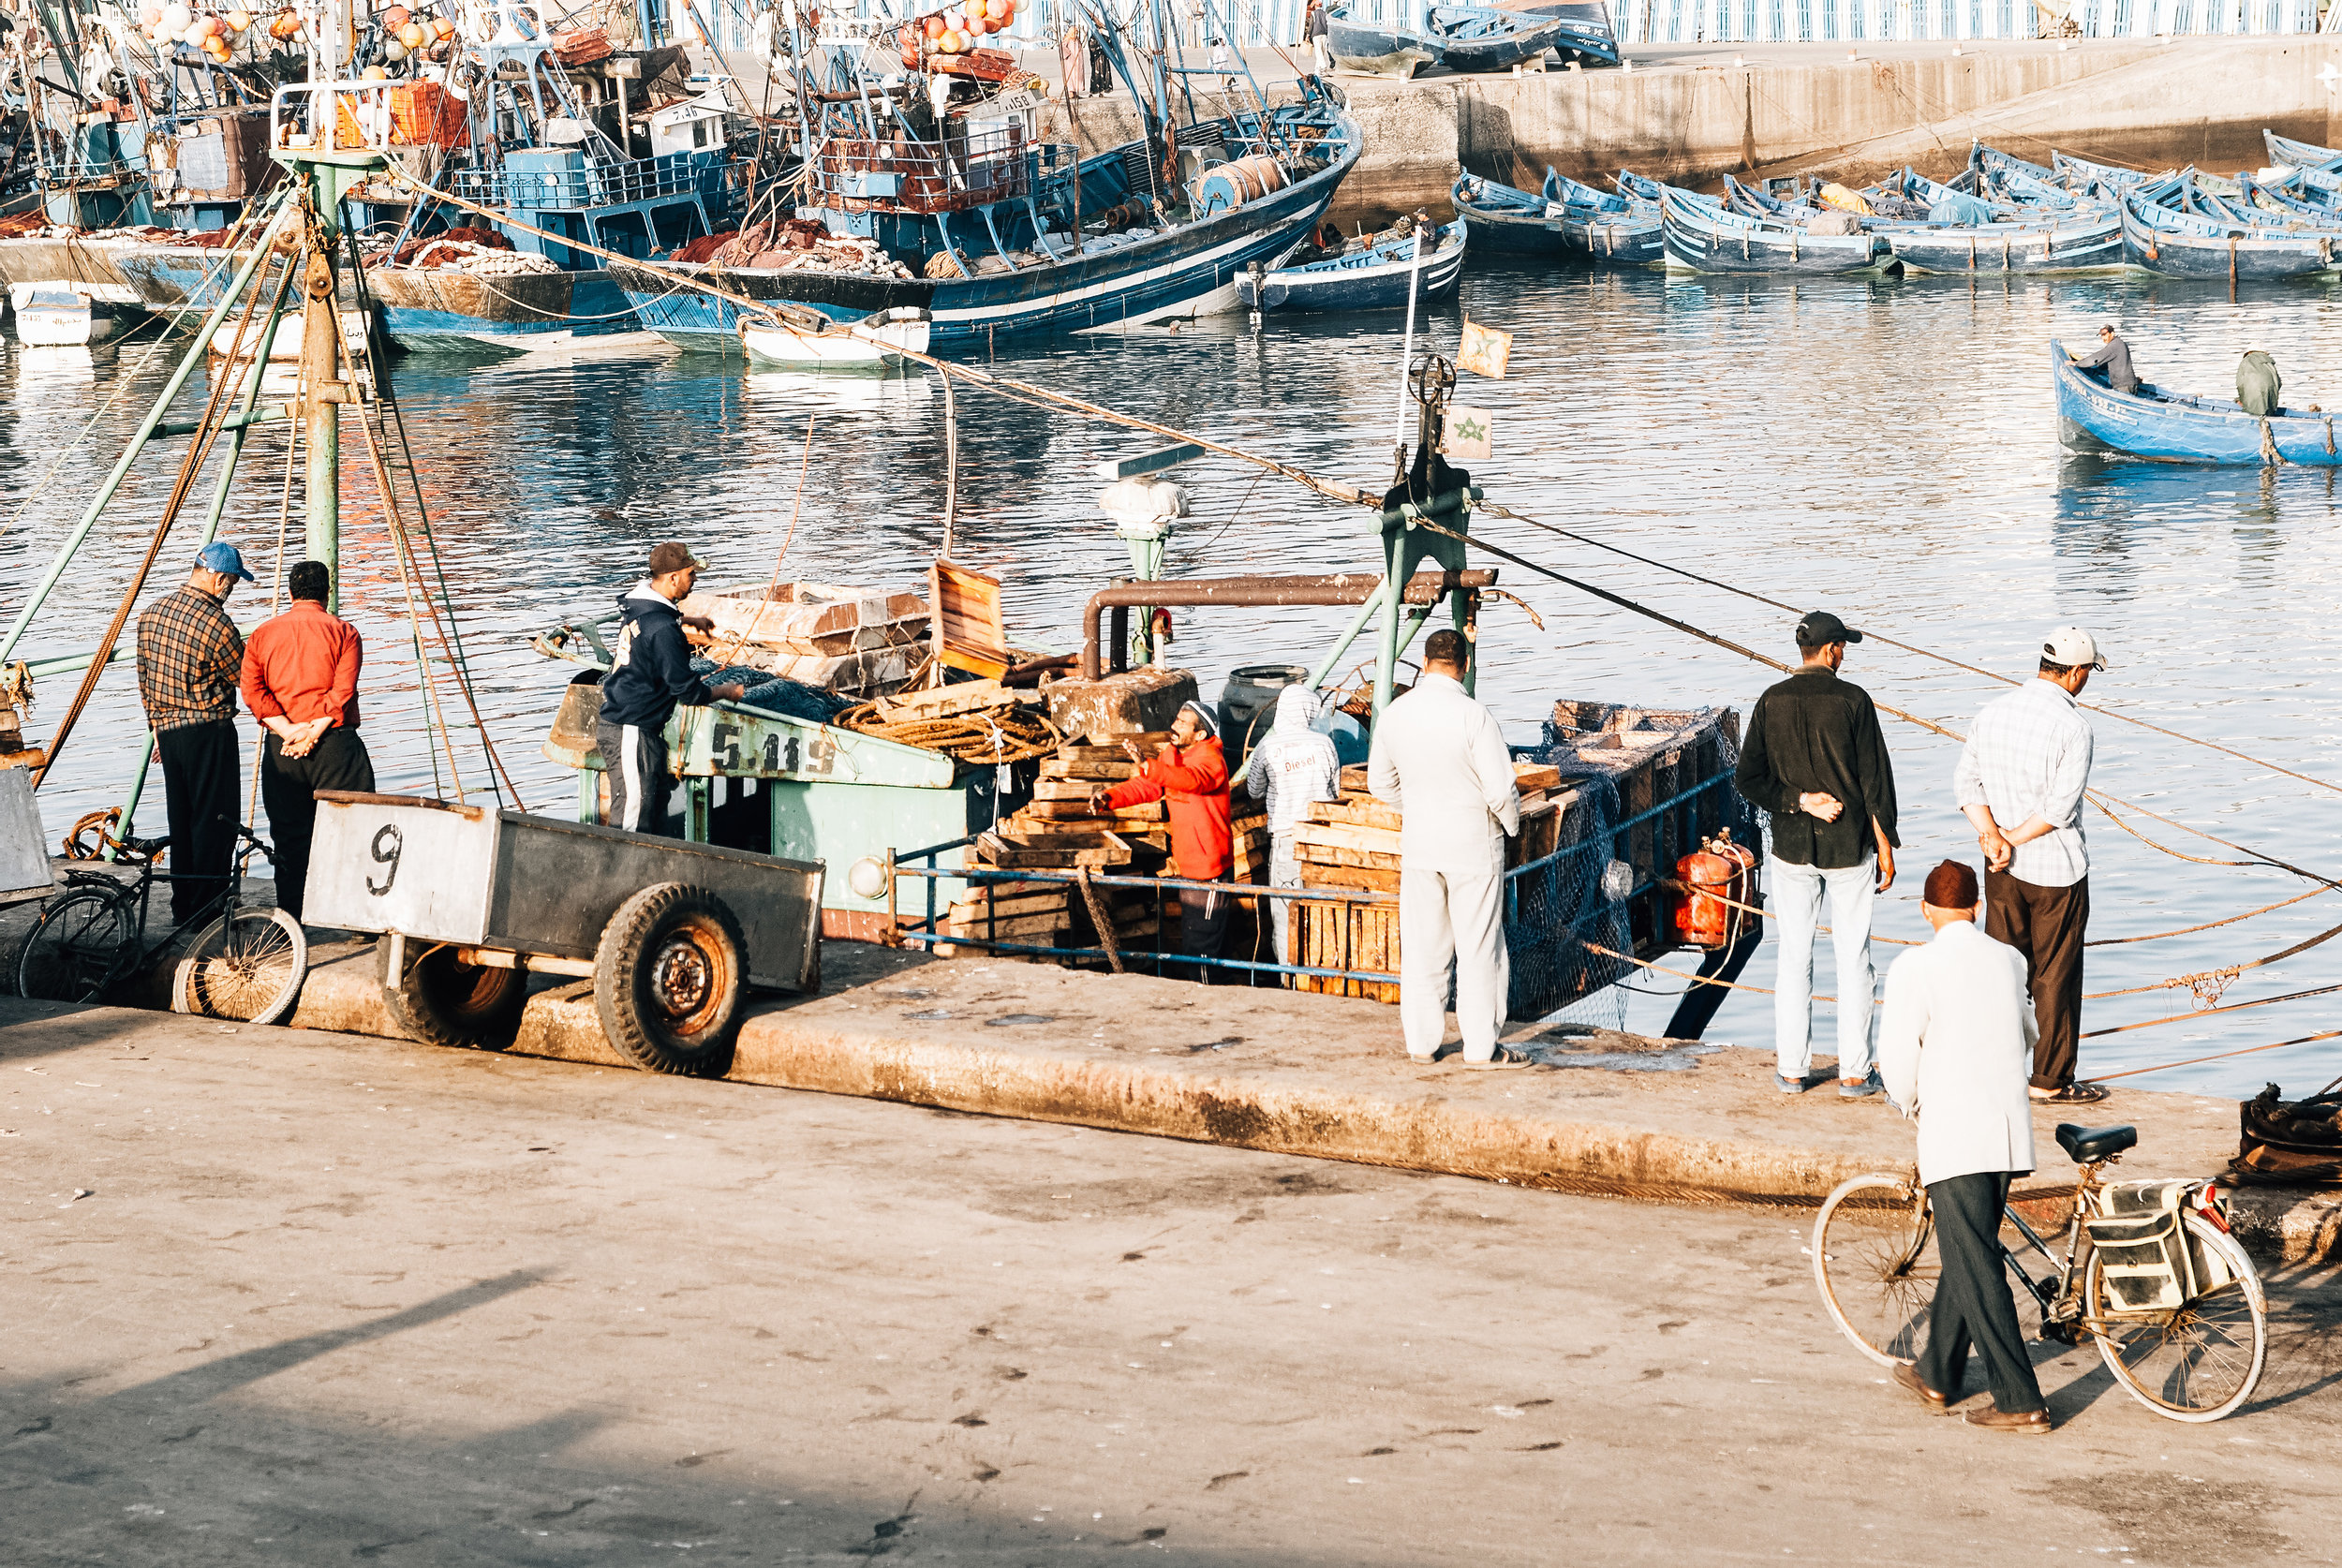 Fishermen Essaouira Morocco Toronto Travel Photographers - Suech and Beck